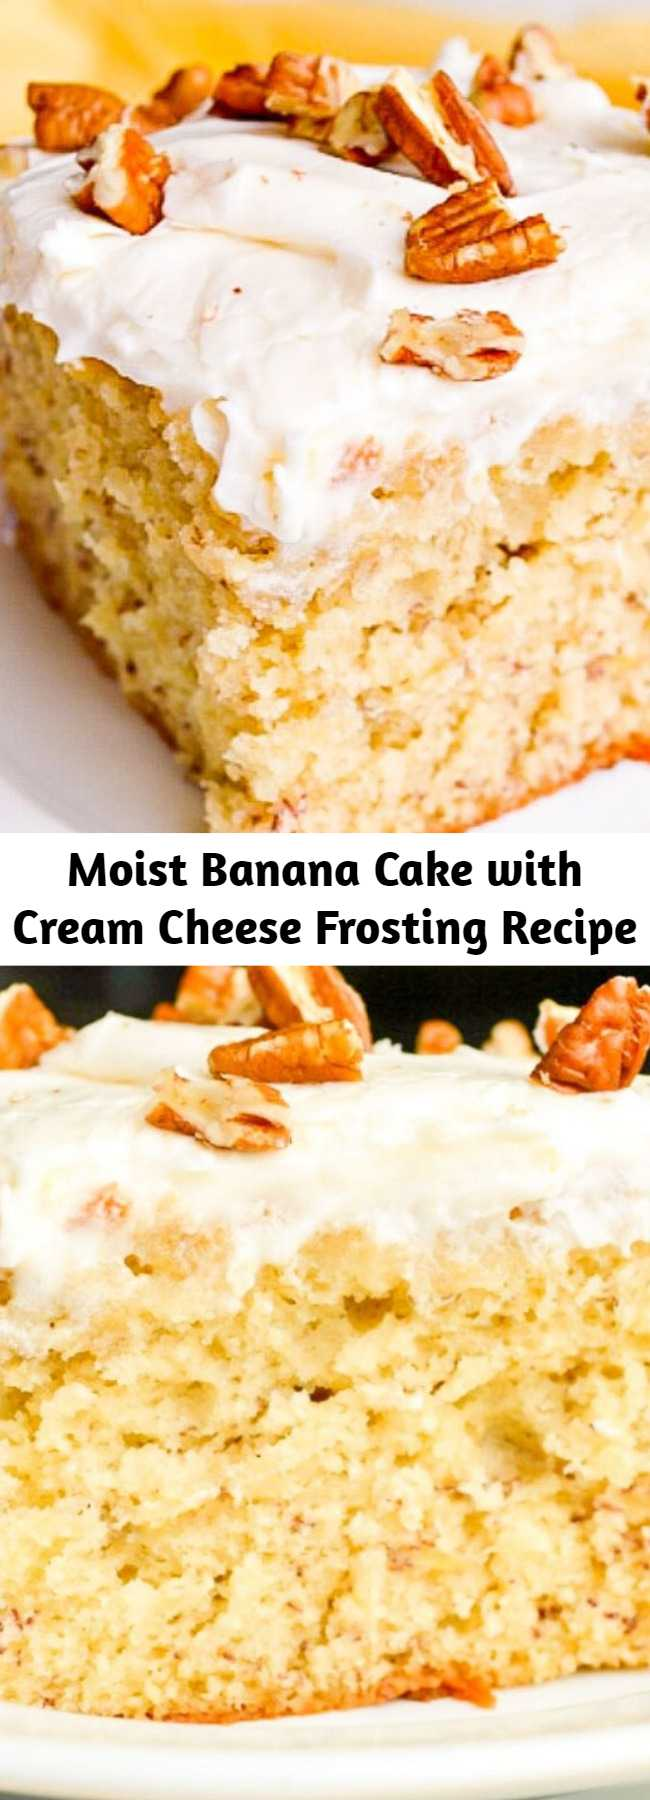 Moist Banana Cake with Cream Cheese Frosting Recipe - Banana Cake with Cream Cheese Frosting combines common pantry ingredients into a tender, moist cake with tons of banana flavor and a tangy, sweet frosting!